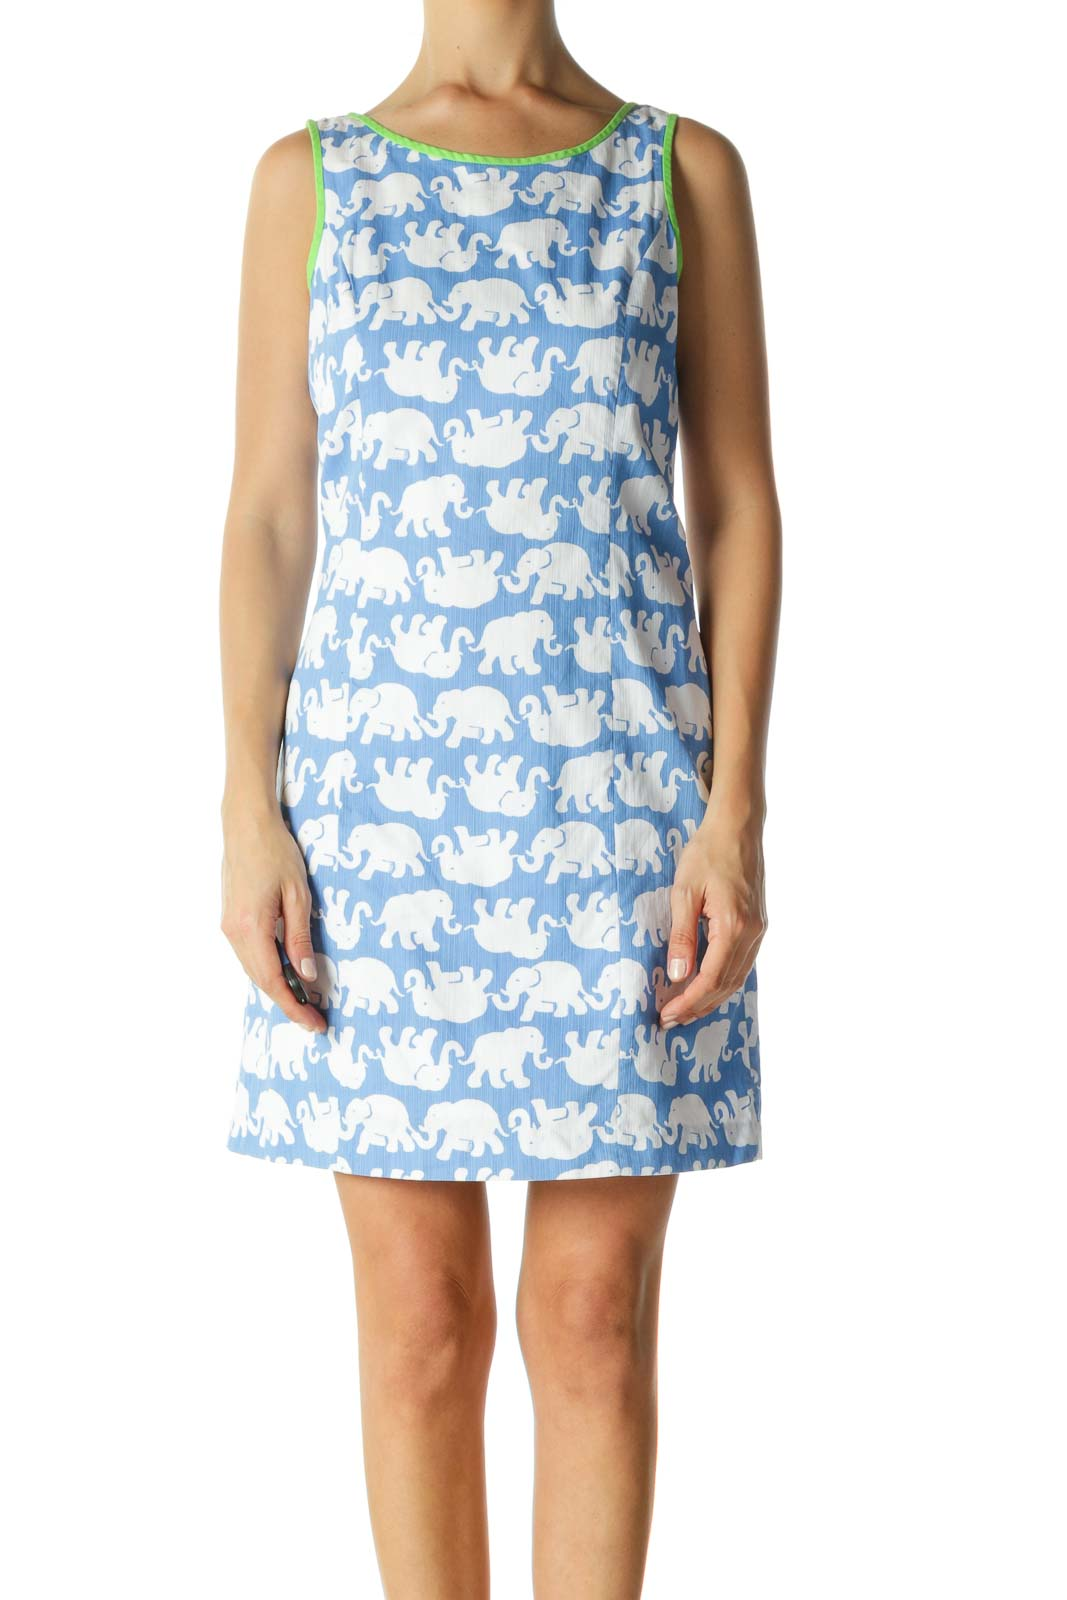 Blue White Green Elephant Textured Print Day Dress